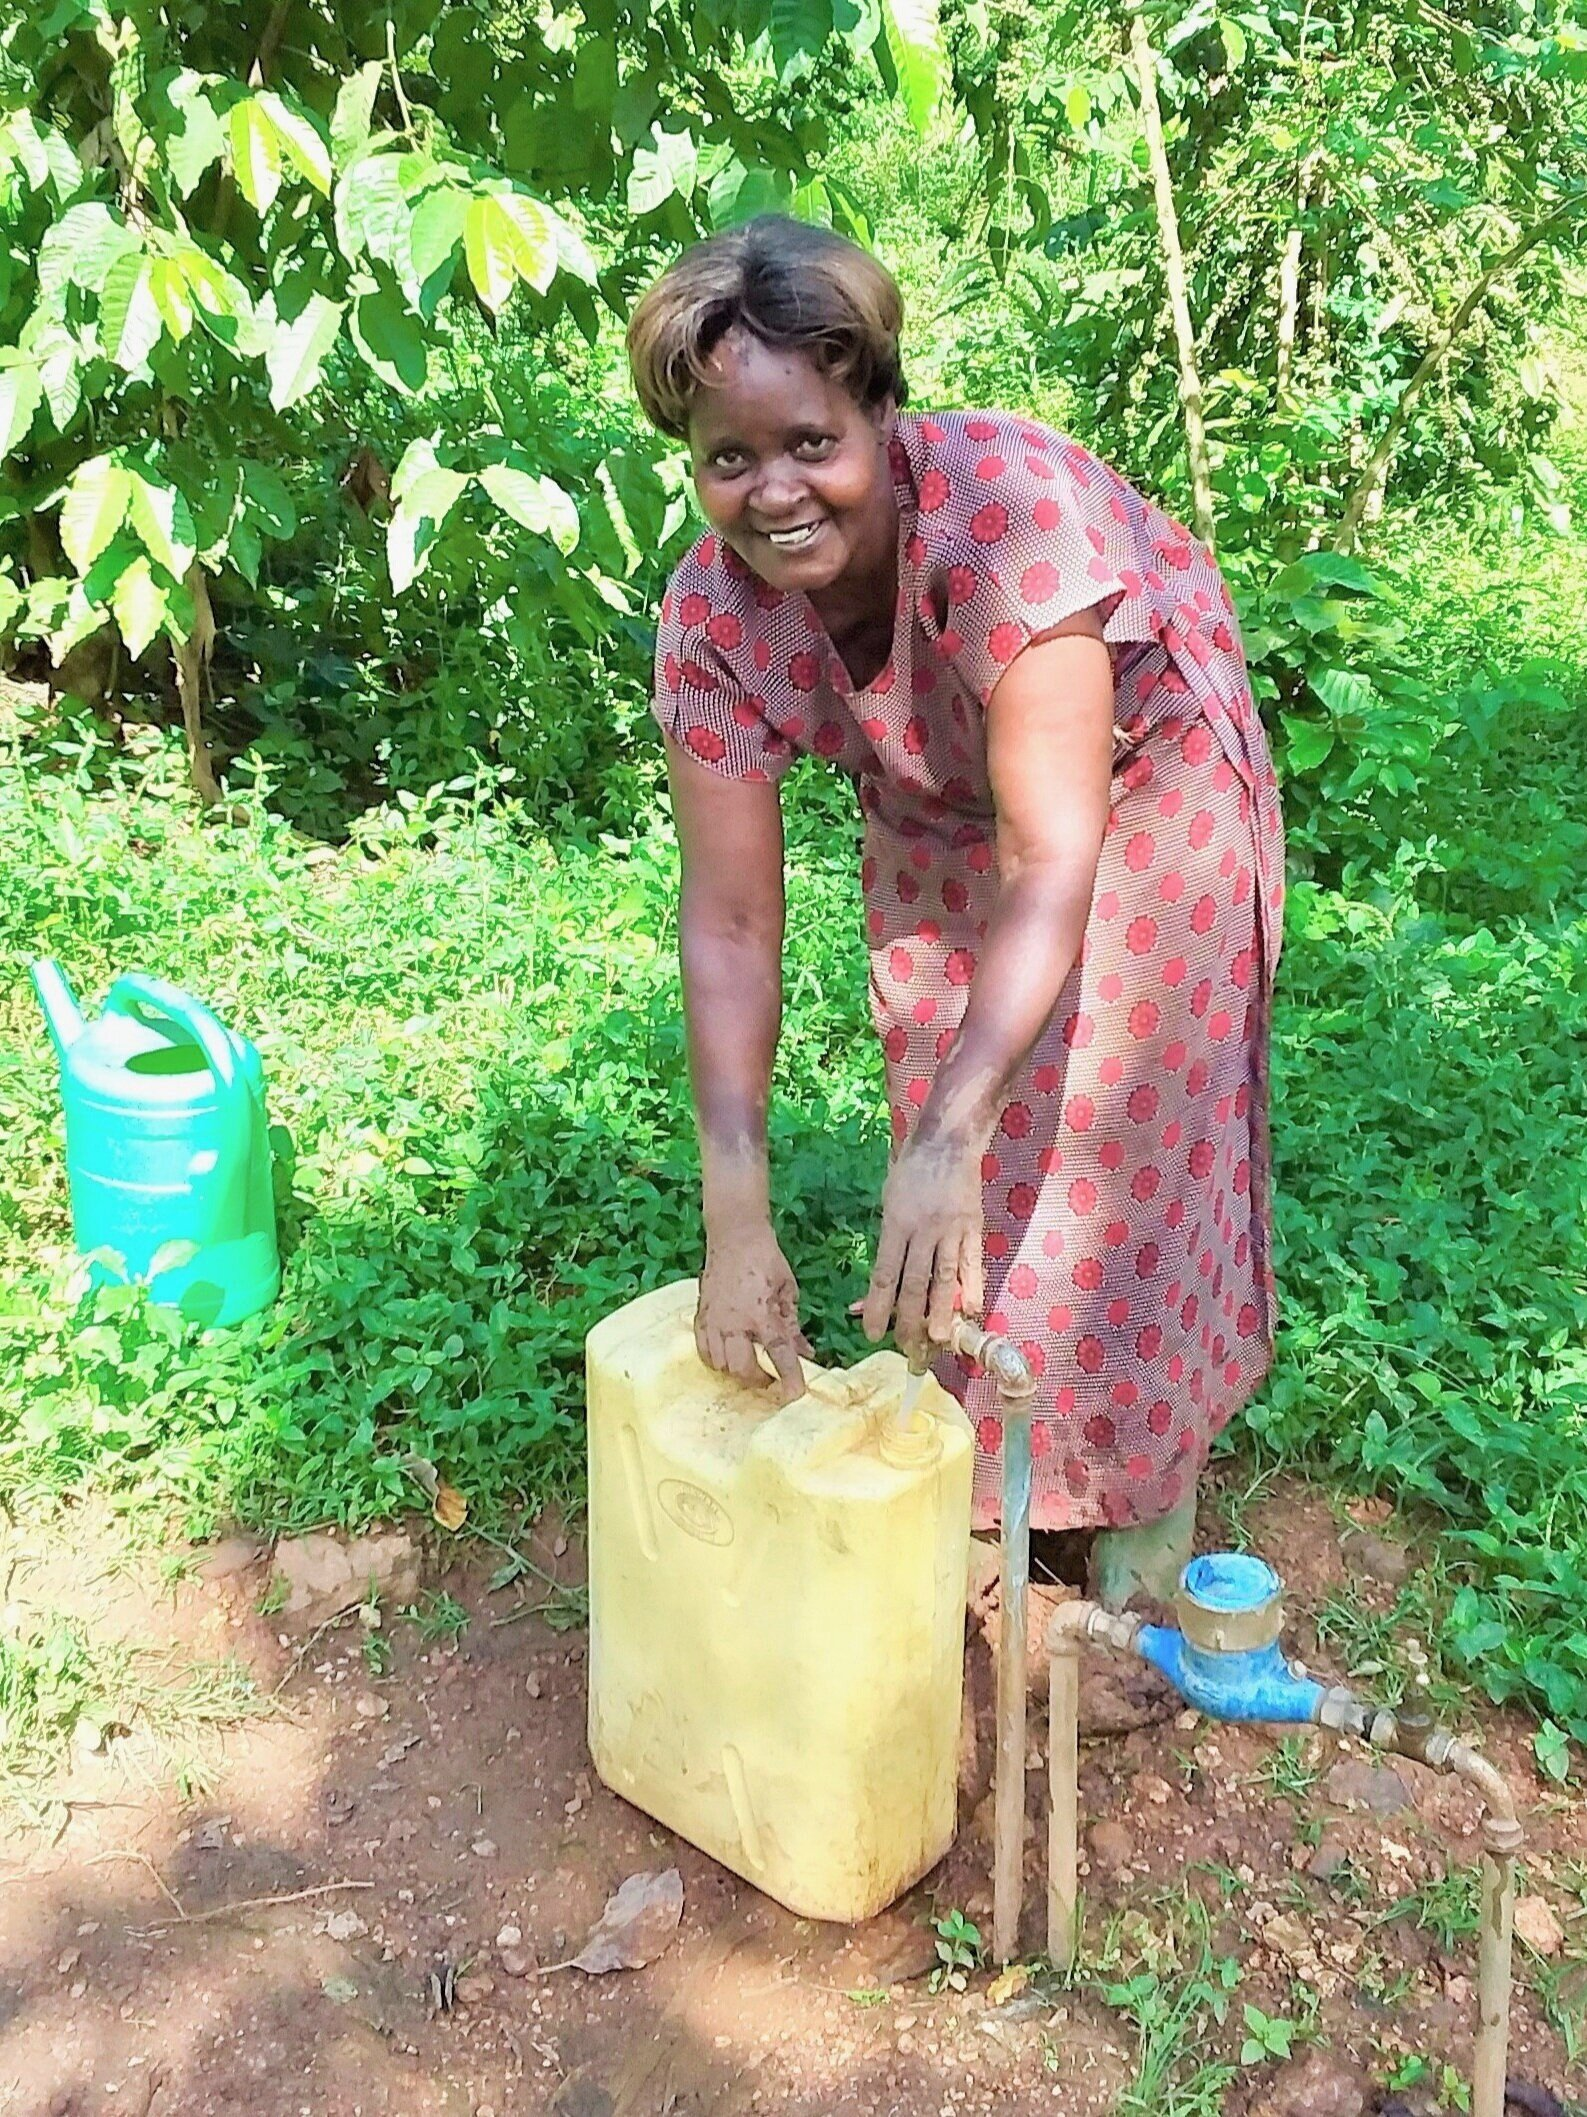 Margaret, Moses' mother, filling a 20 liter jerry can from their water tap near their home.